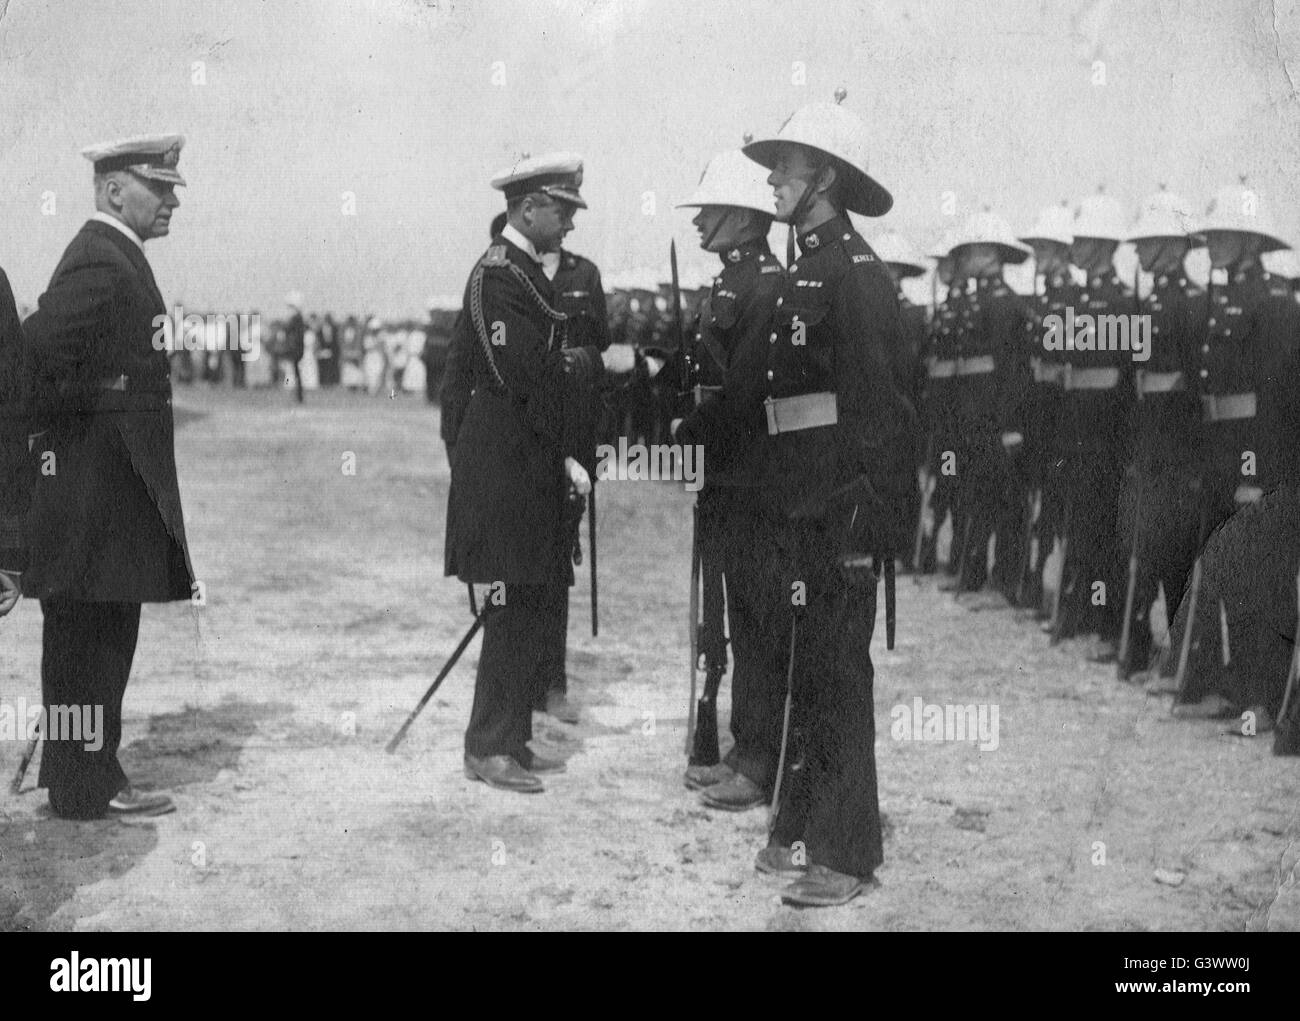 Royal Navy officers and royal marines inspected by royalty - Stock Image